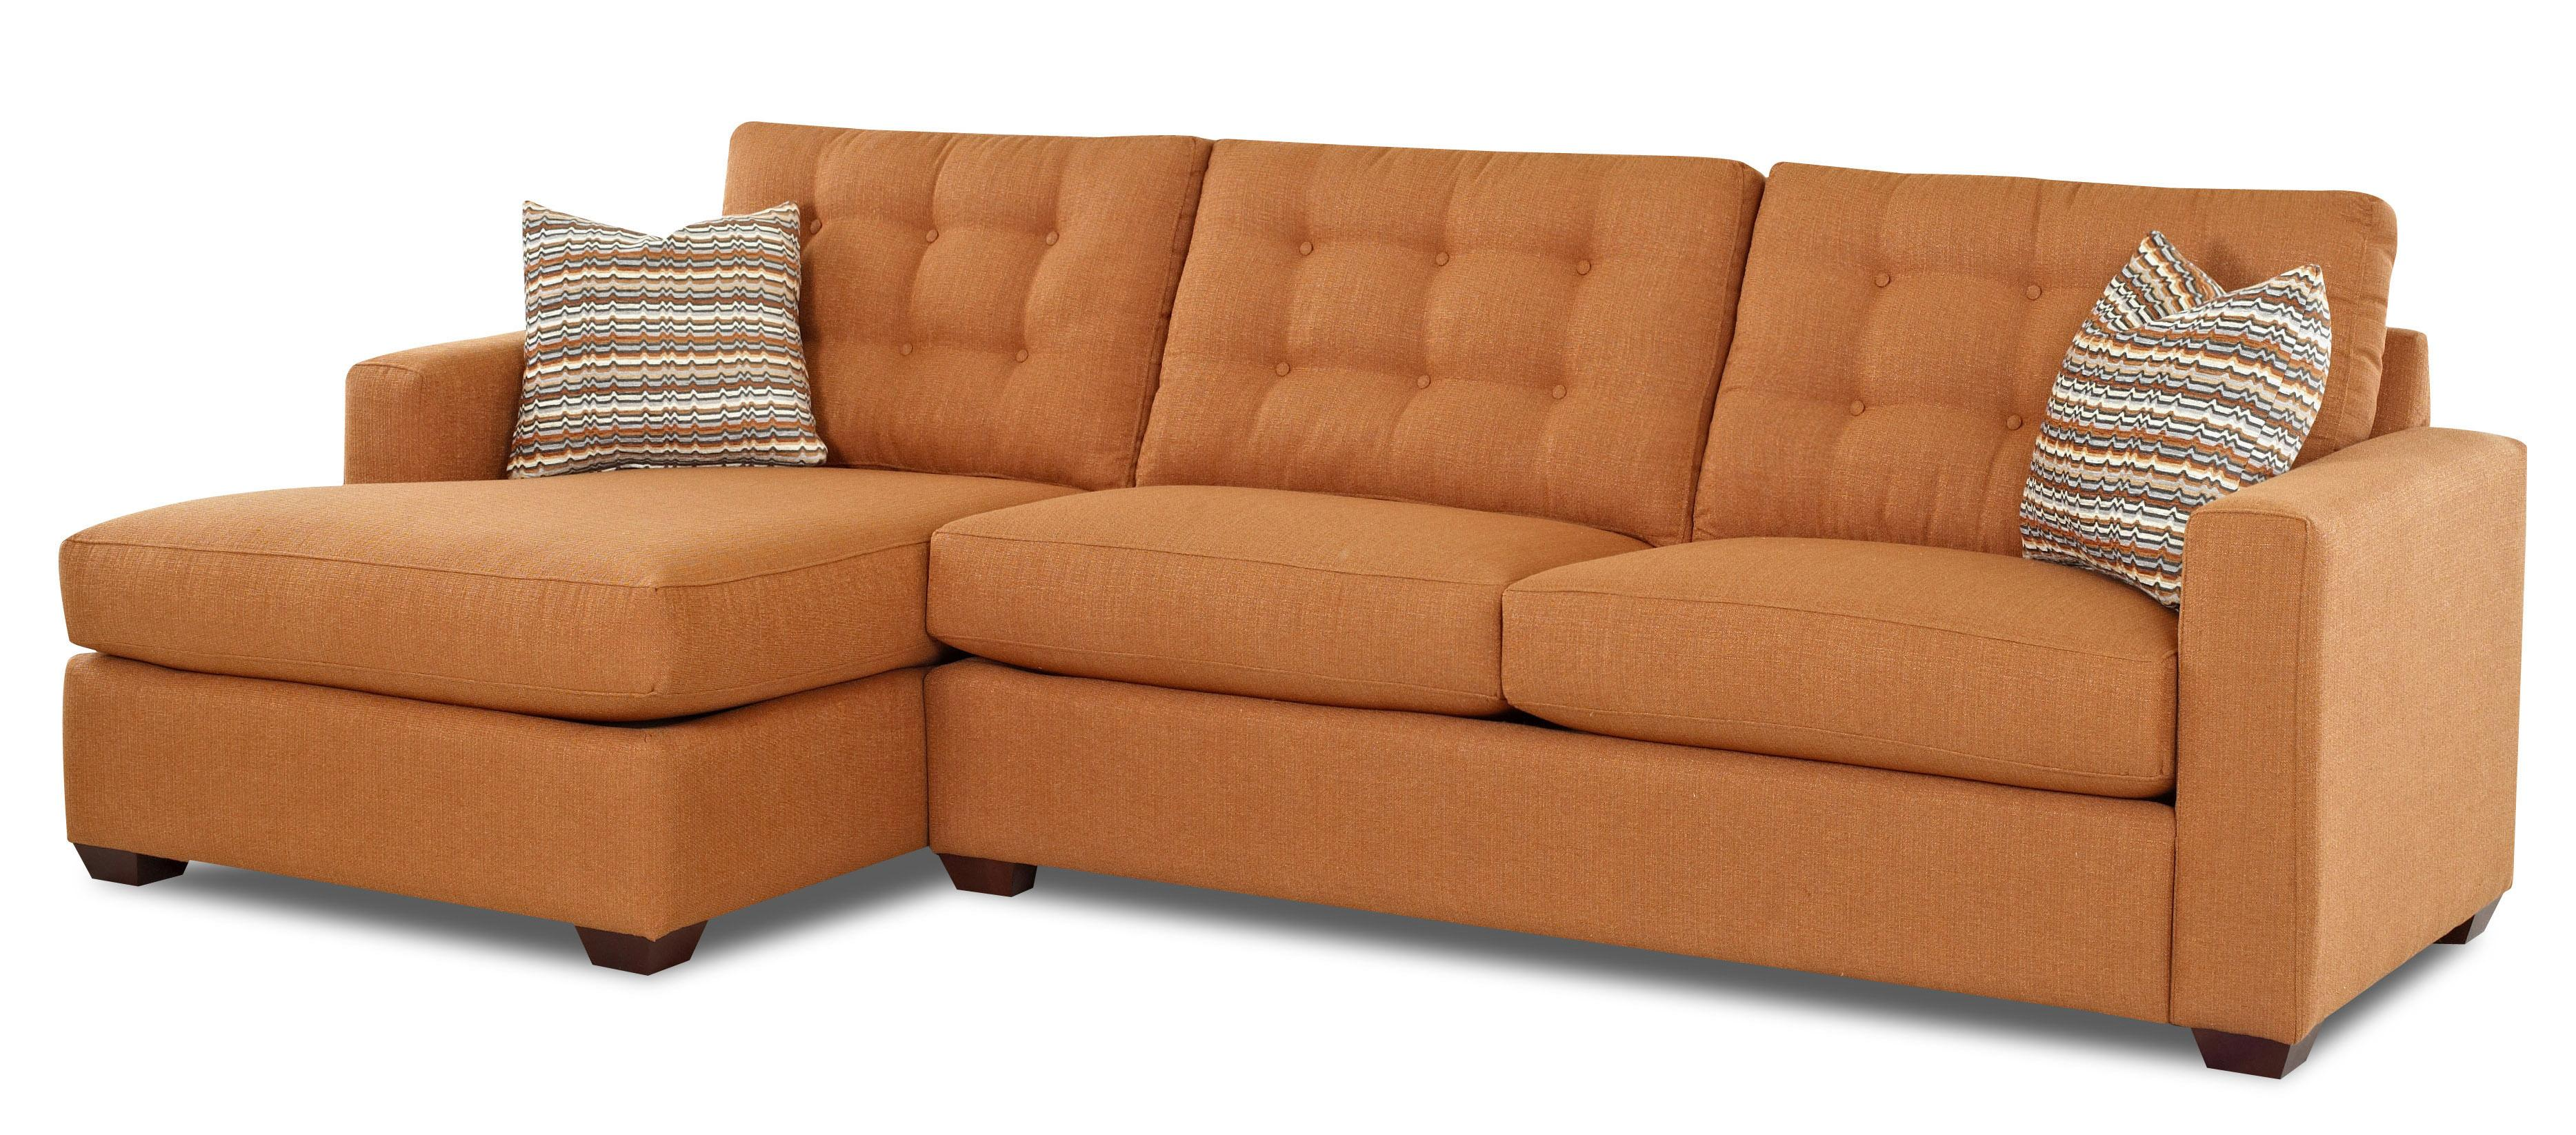 Contemporary Sectional Sofa with Left Facing Chaise Lounge